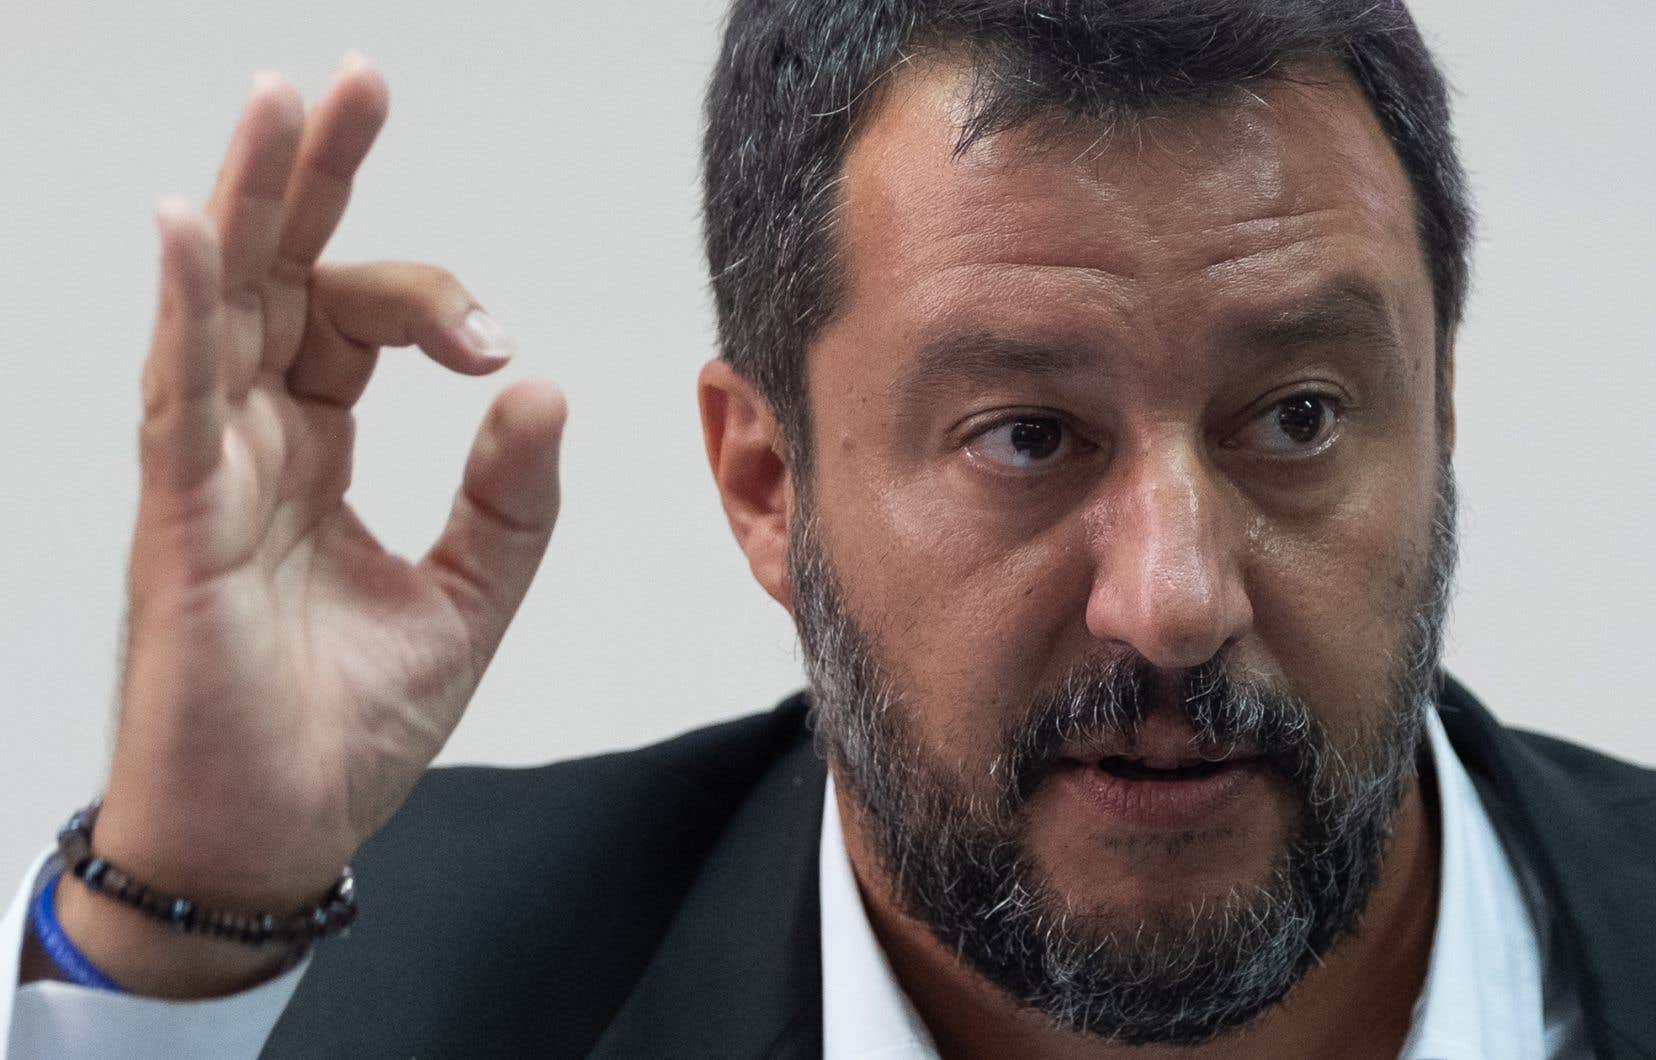 Le chef de la Ligue, Matteo Salvini